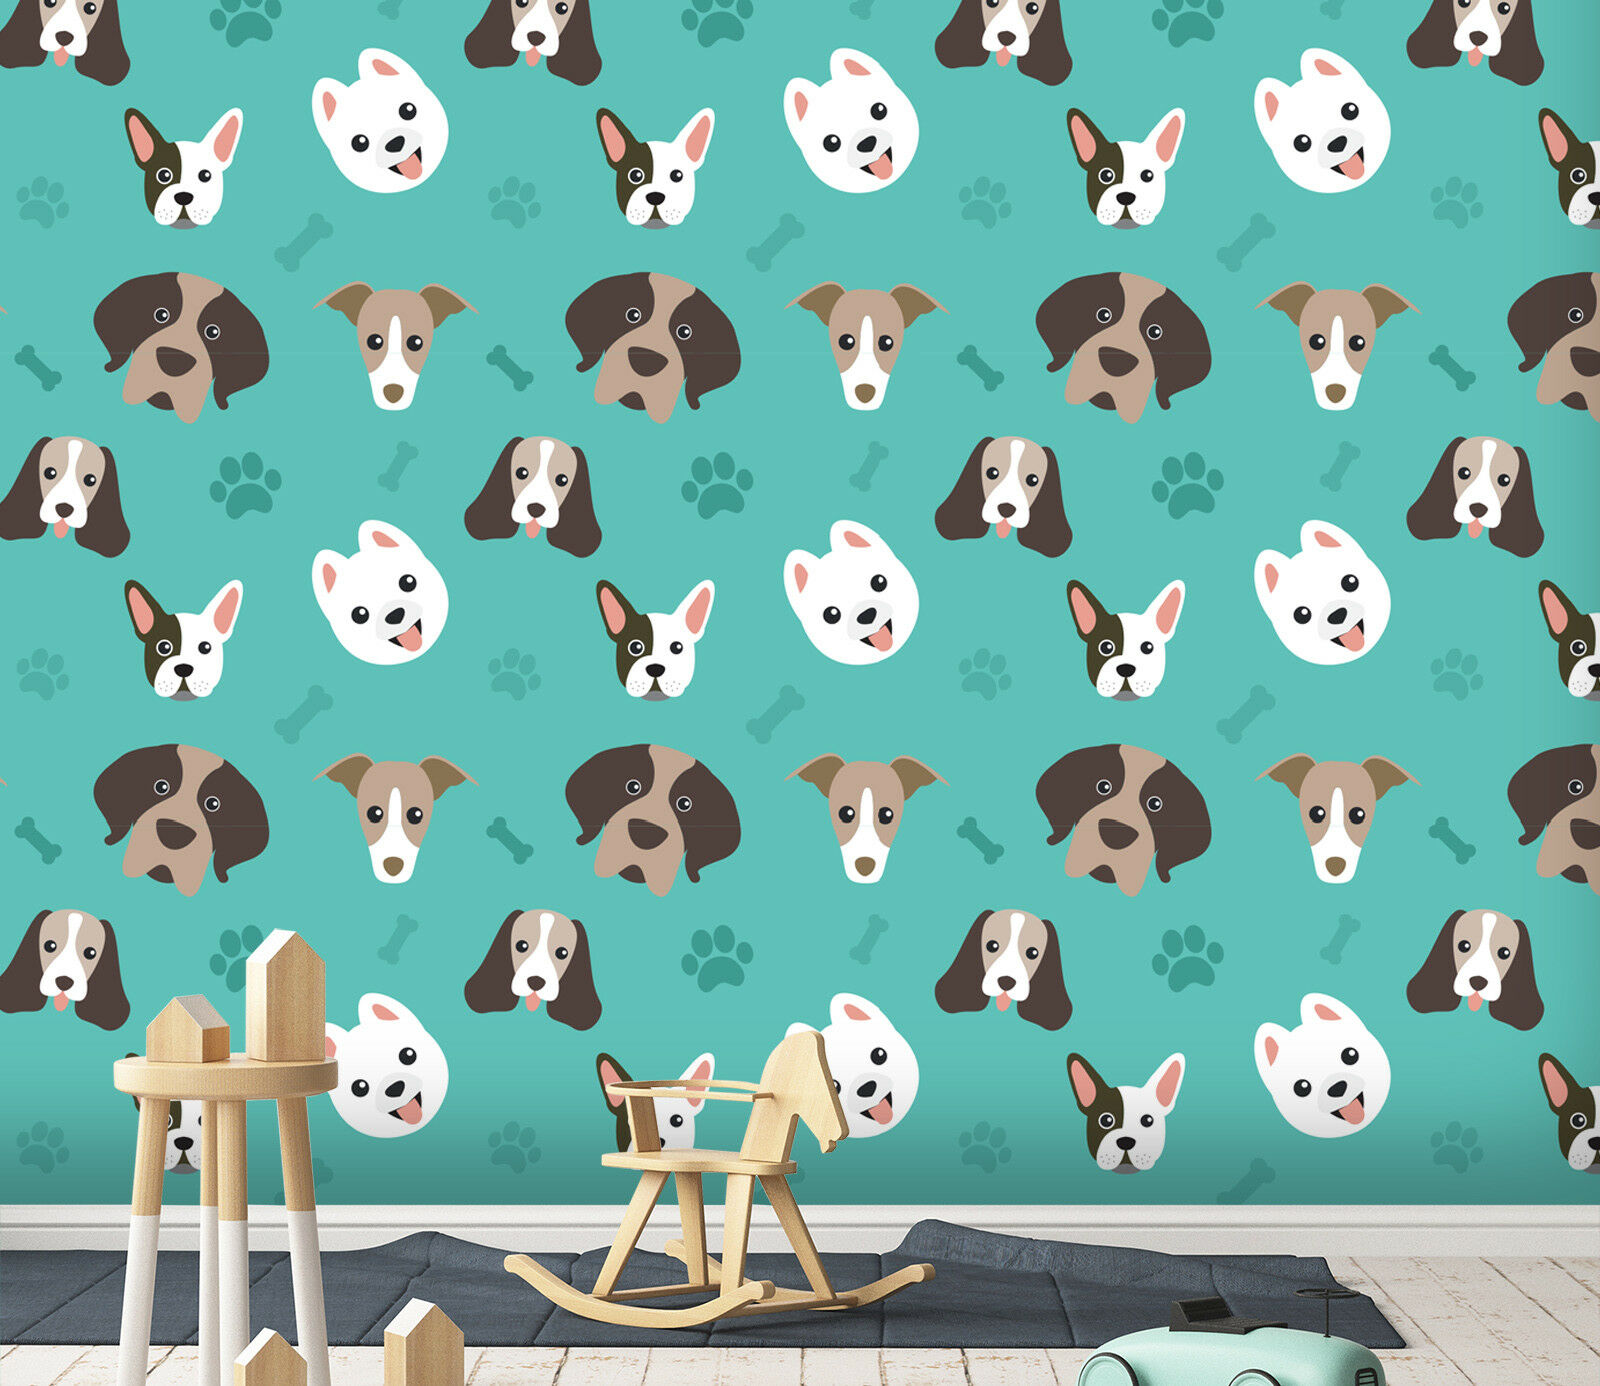 3D Dog Footprint Bones 2 Wallpaper Mural Wall Print Decal Indoor Murals AU Lemon